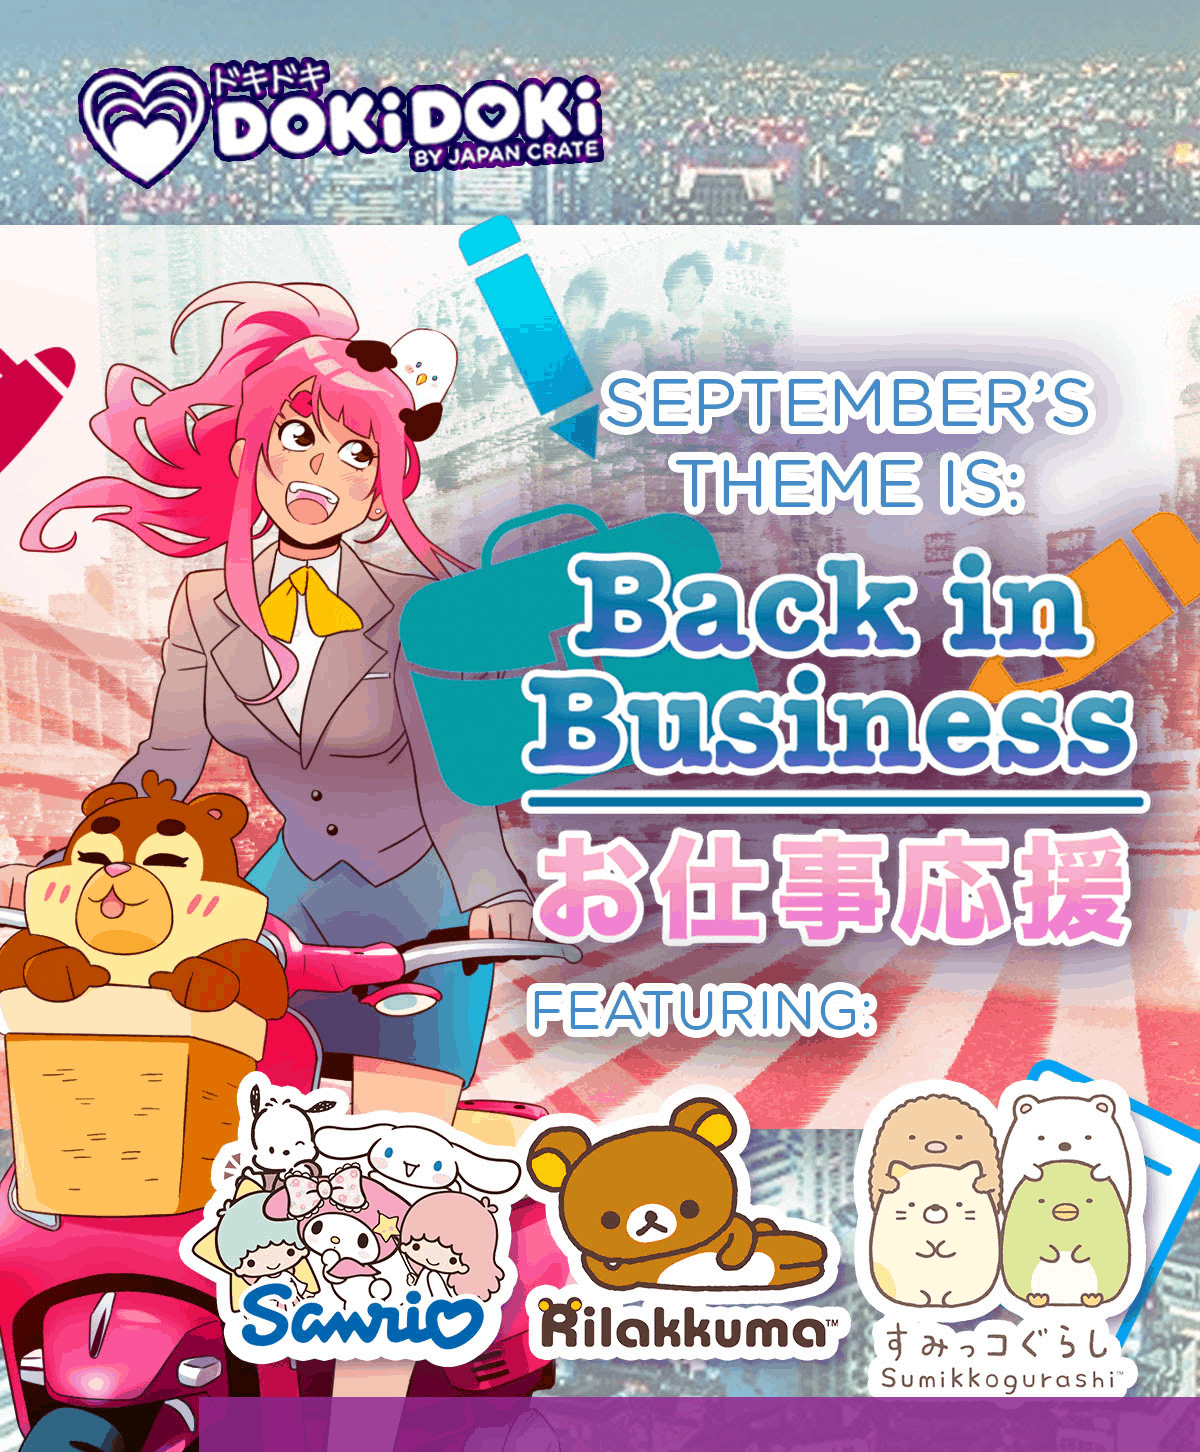 Doki Doki September 2019 Full Spoilers + Coupon!